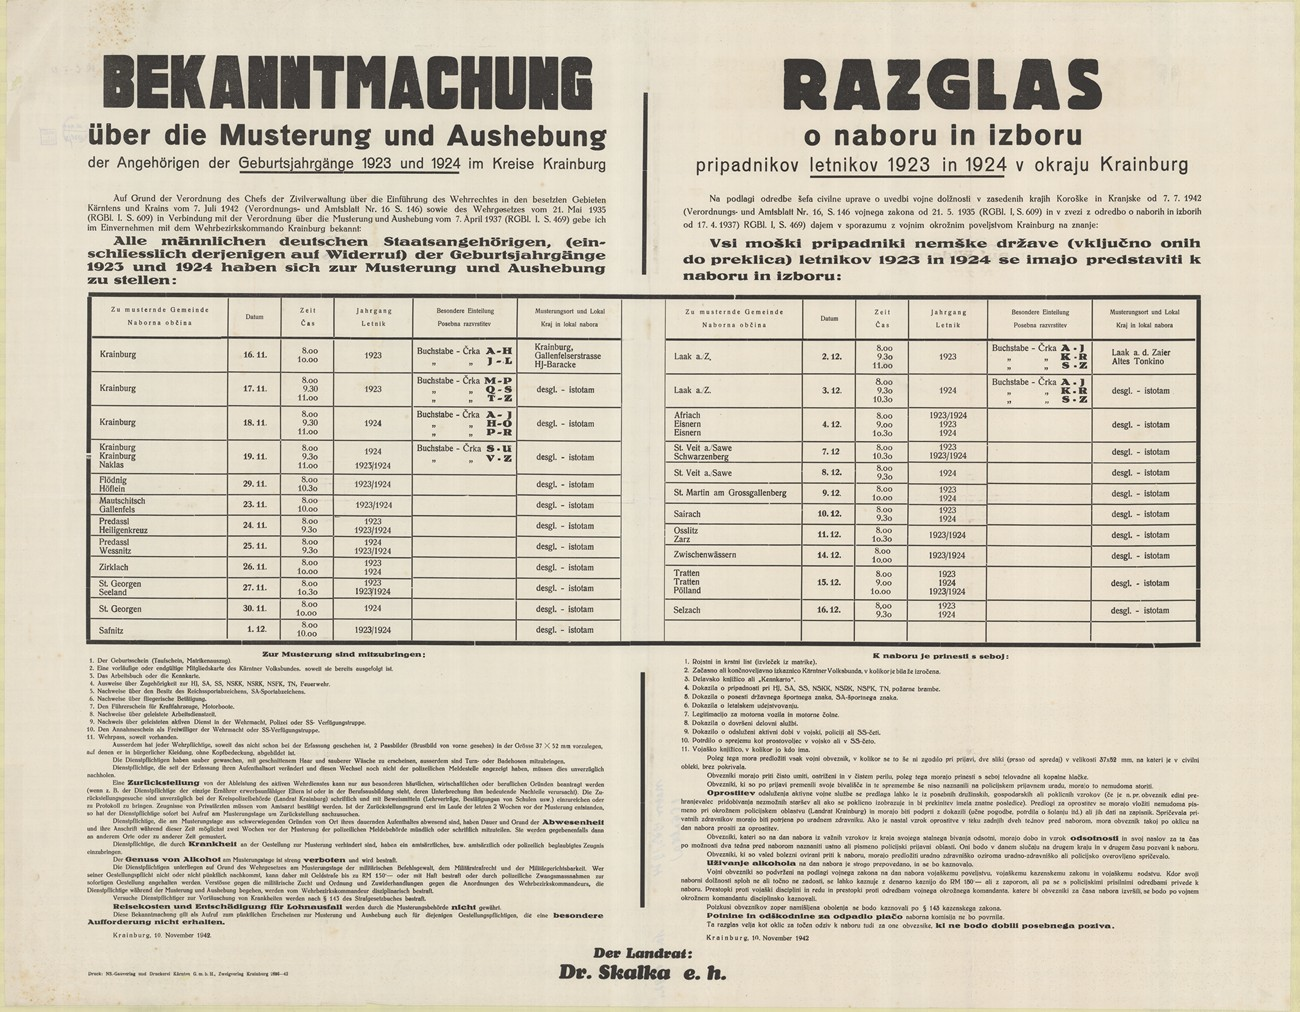 The residents of Žiri were also mobilised into the German army. The Germans used this poster (seen above) to notify all men born between 1923 and 1924 about the draft. SI ZAL ŠKL, 0268, 79, OK-C-I-21.